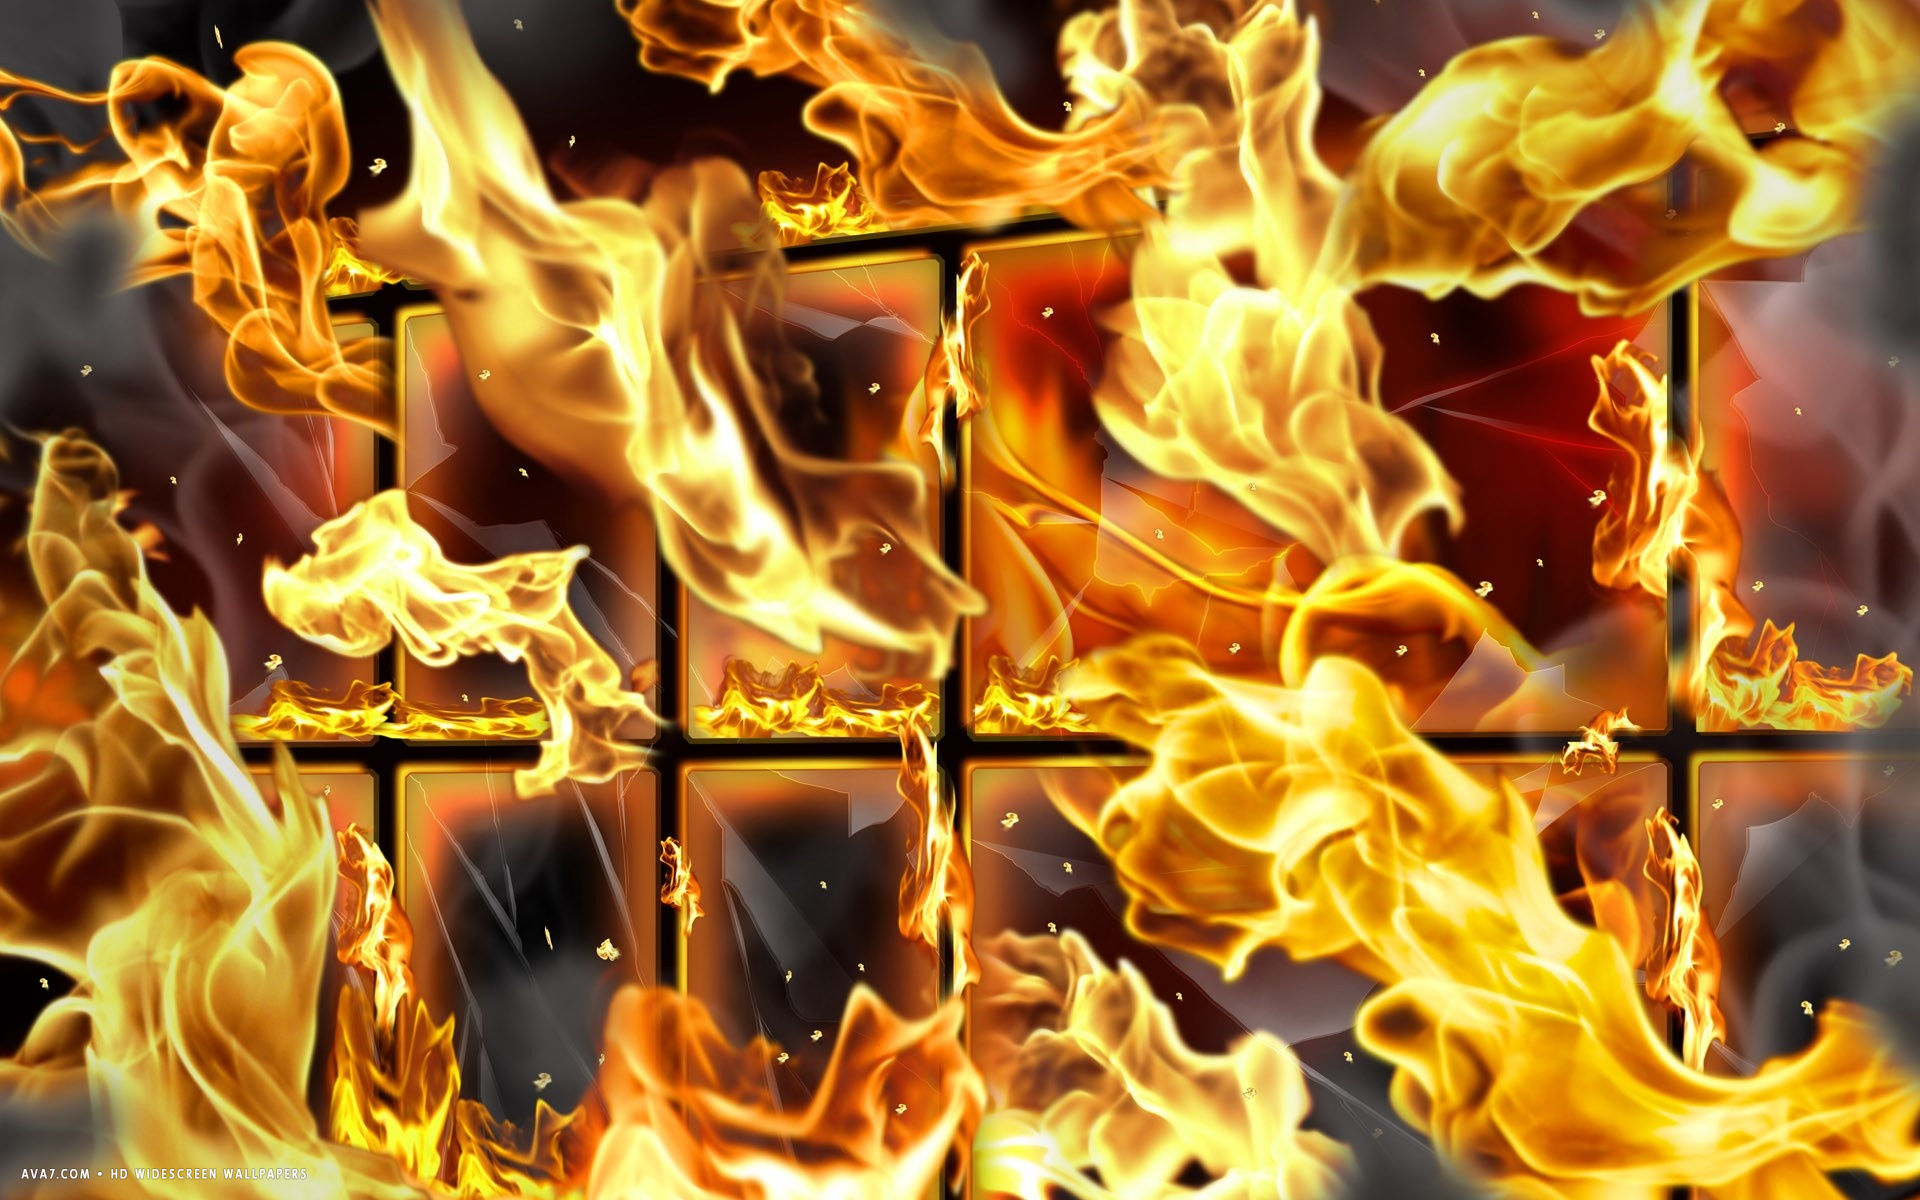 3d Grid Wallpaper 3d Flames Abstract Grid Cage Window Fire Hd Widescreen